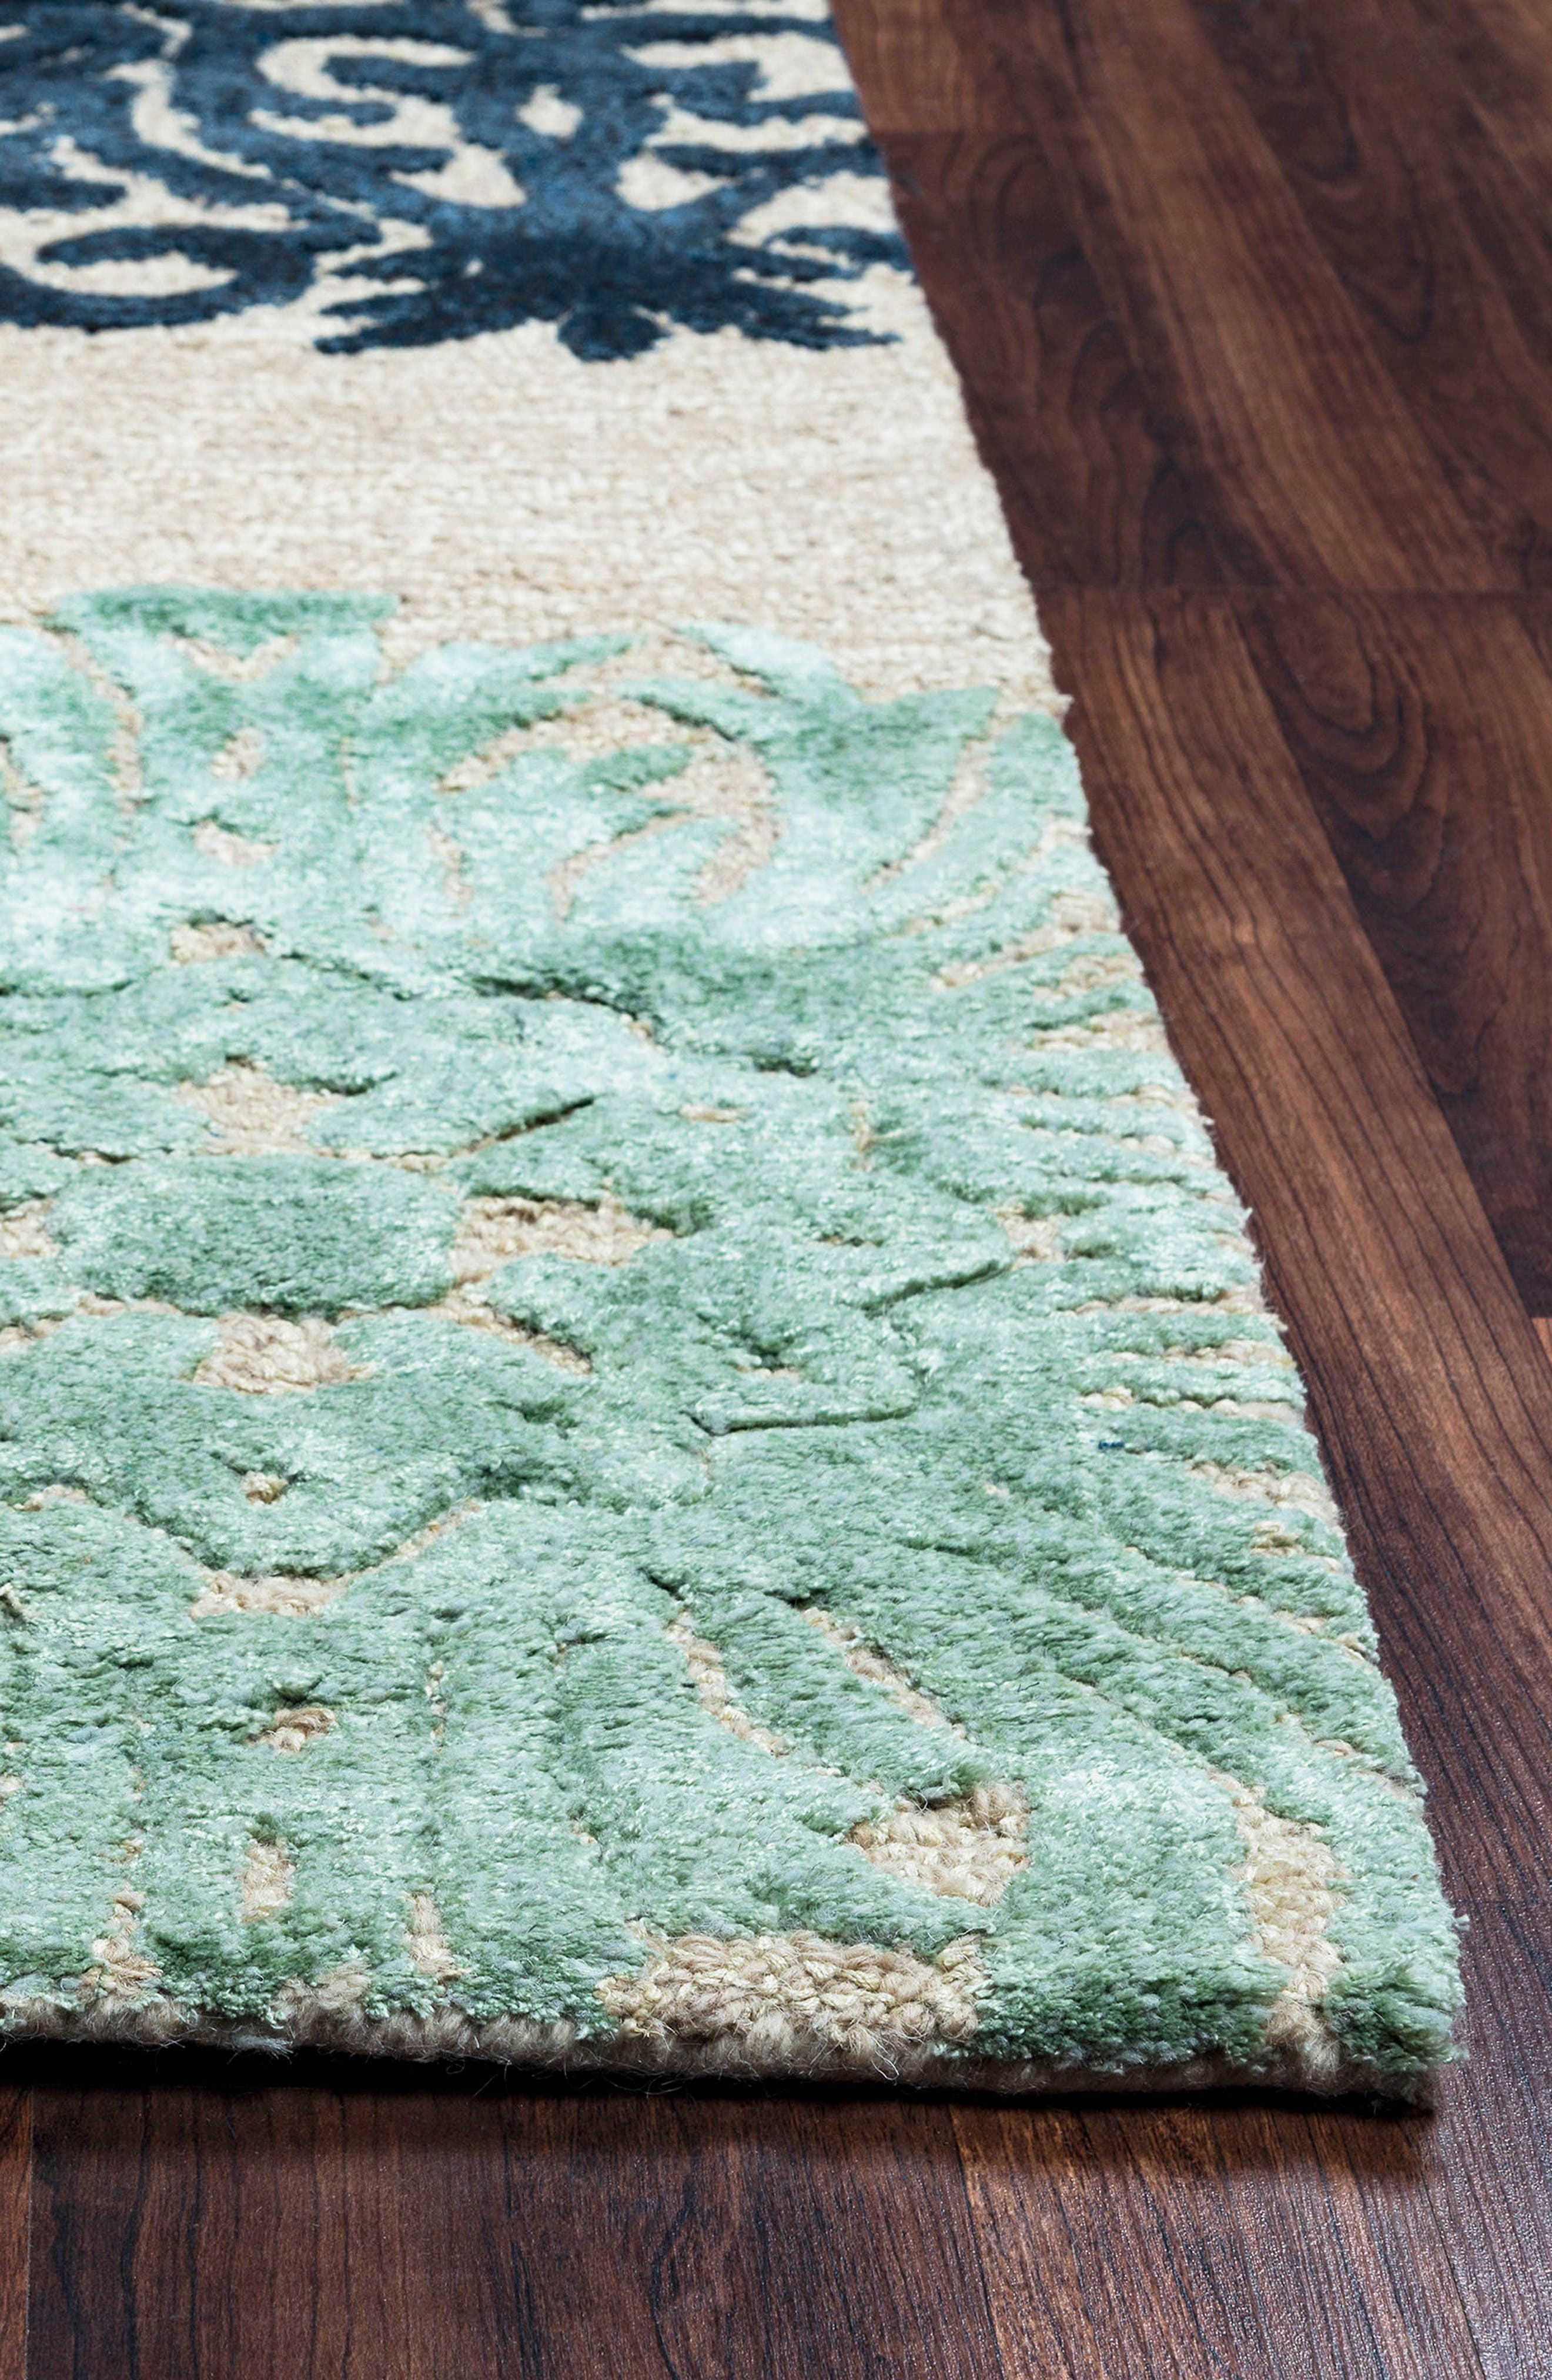 'Eden Harbor' Hand Tufted Wool Area Rug,                             Alternate thumbnail 3, color,                             Navy/ Aqua/ Grey